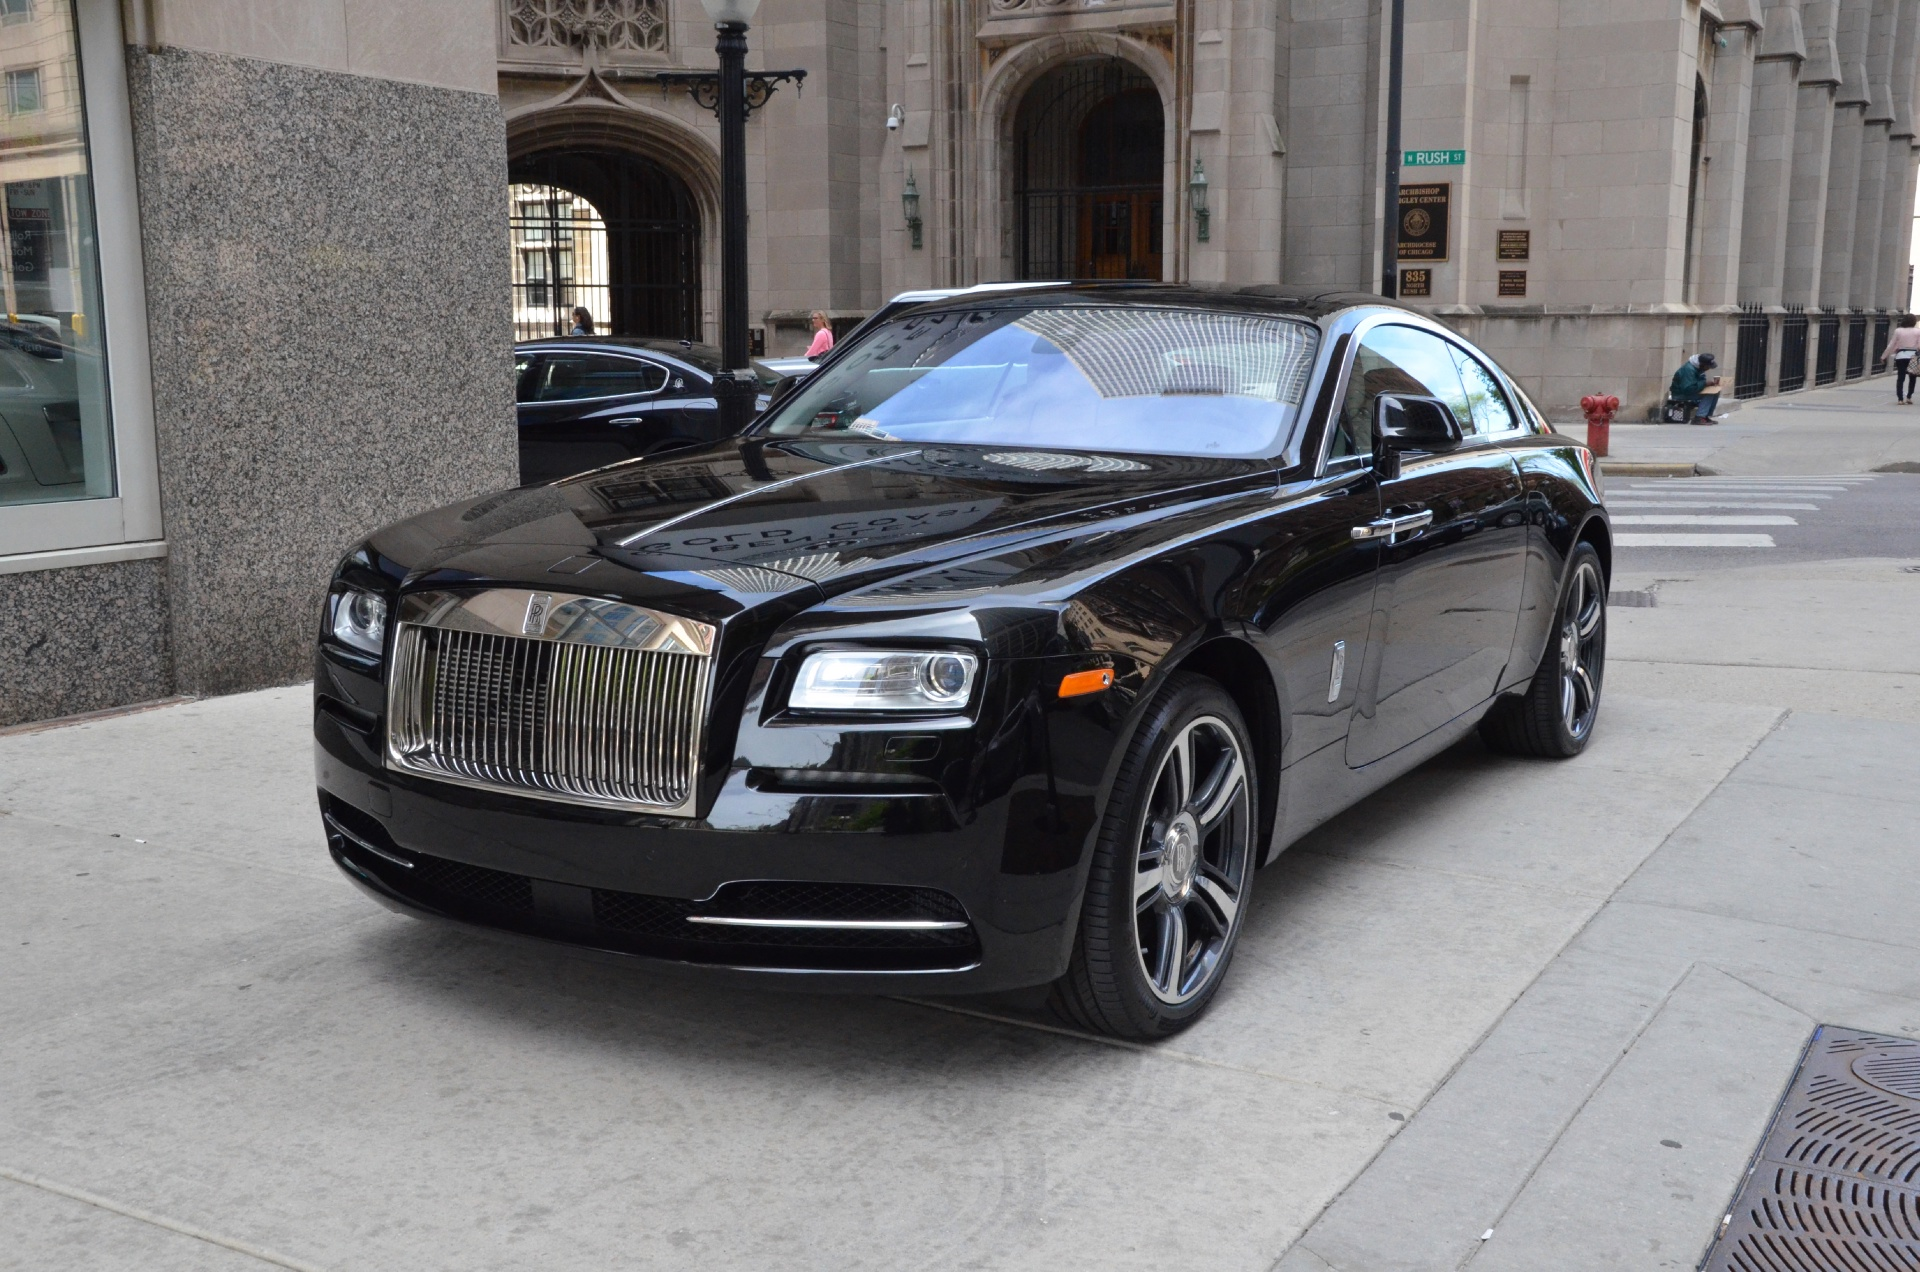 2014 rolls royce wraith stock r140 s for sale near. Black Bedroom Furniture Sets. Home Design Ideas